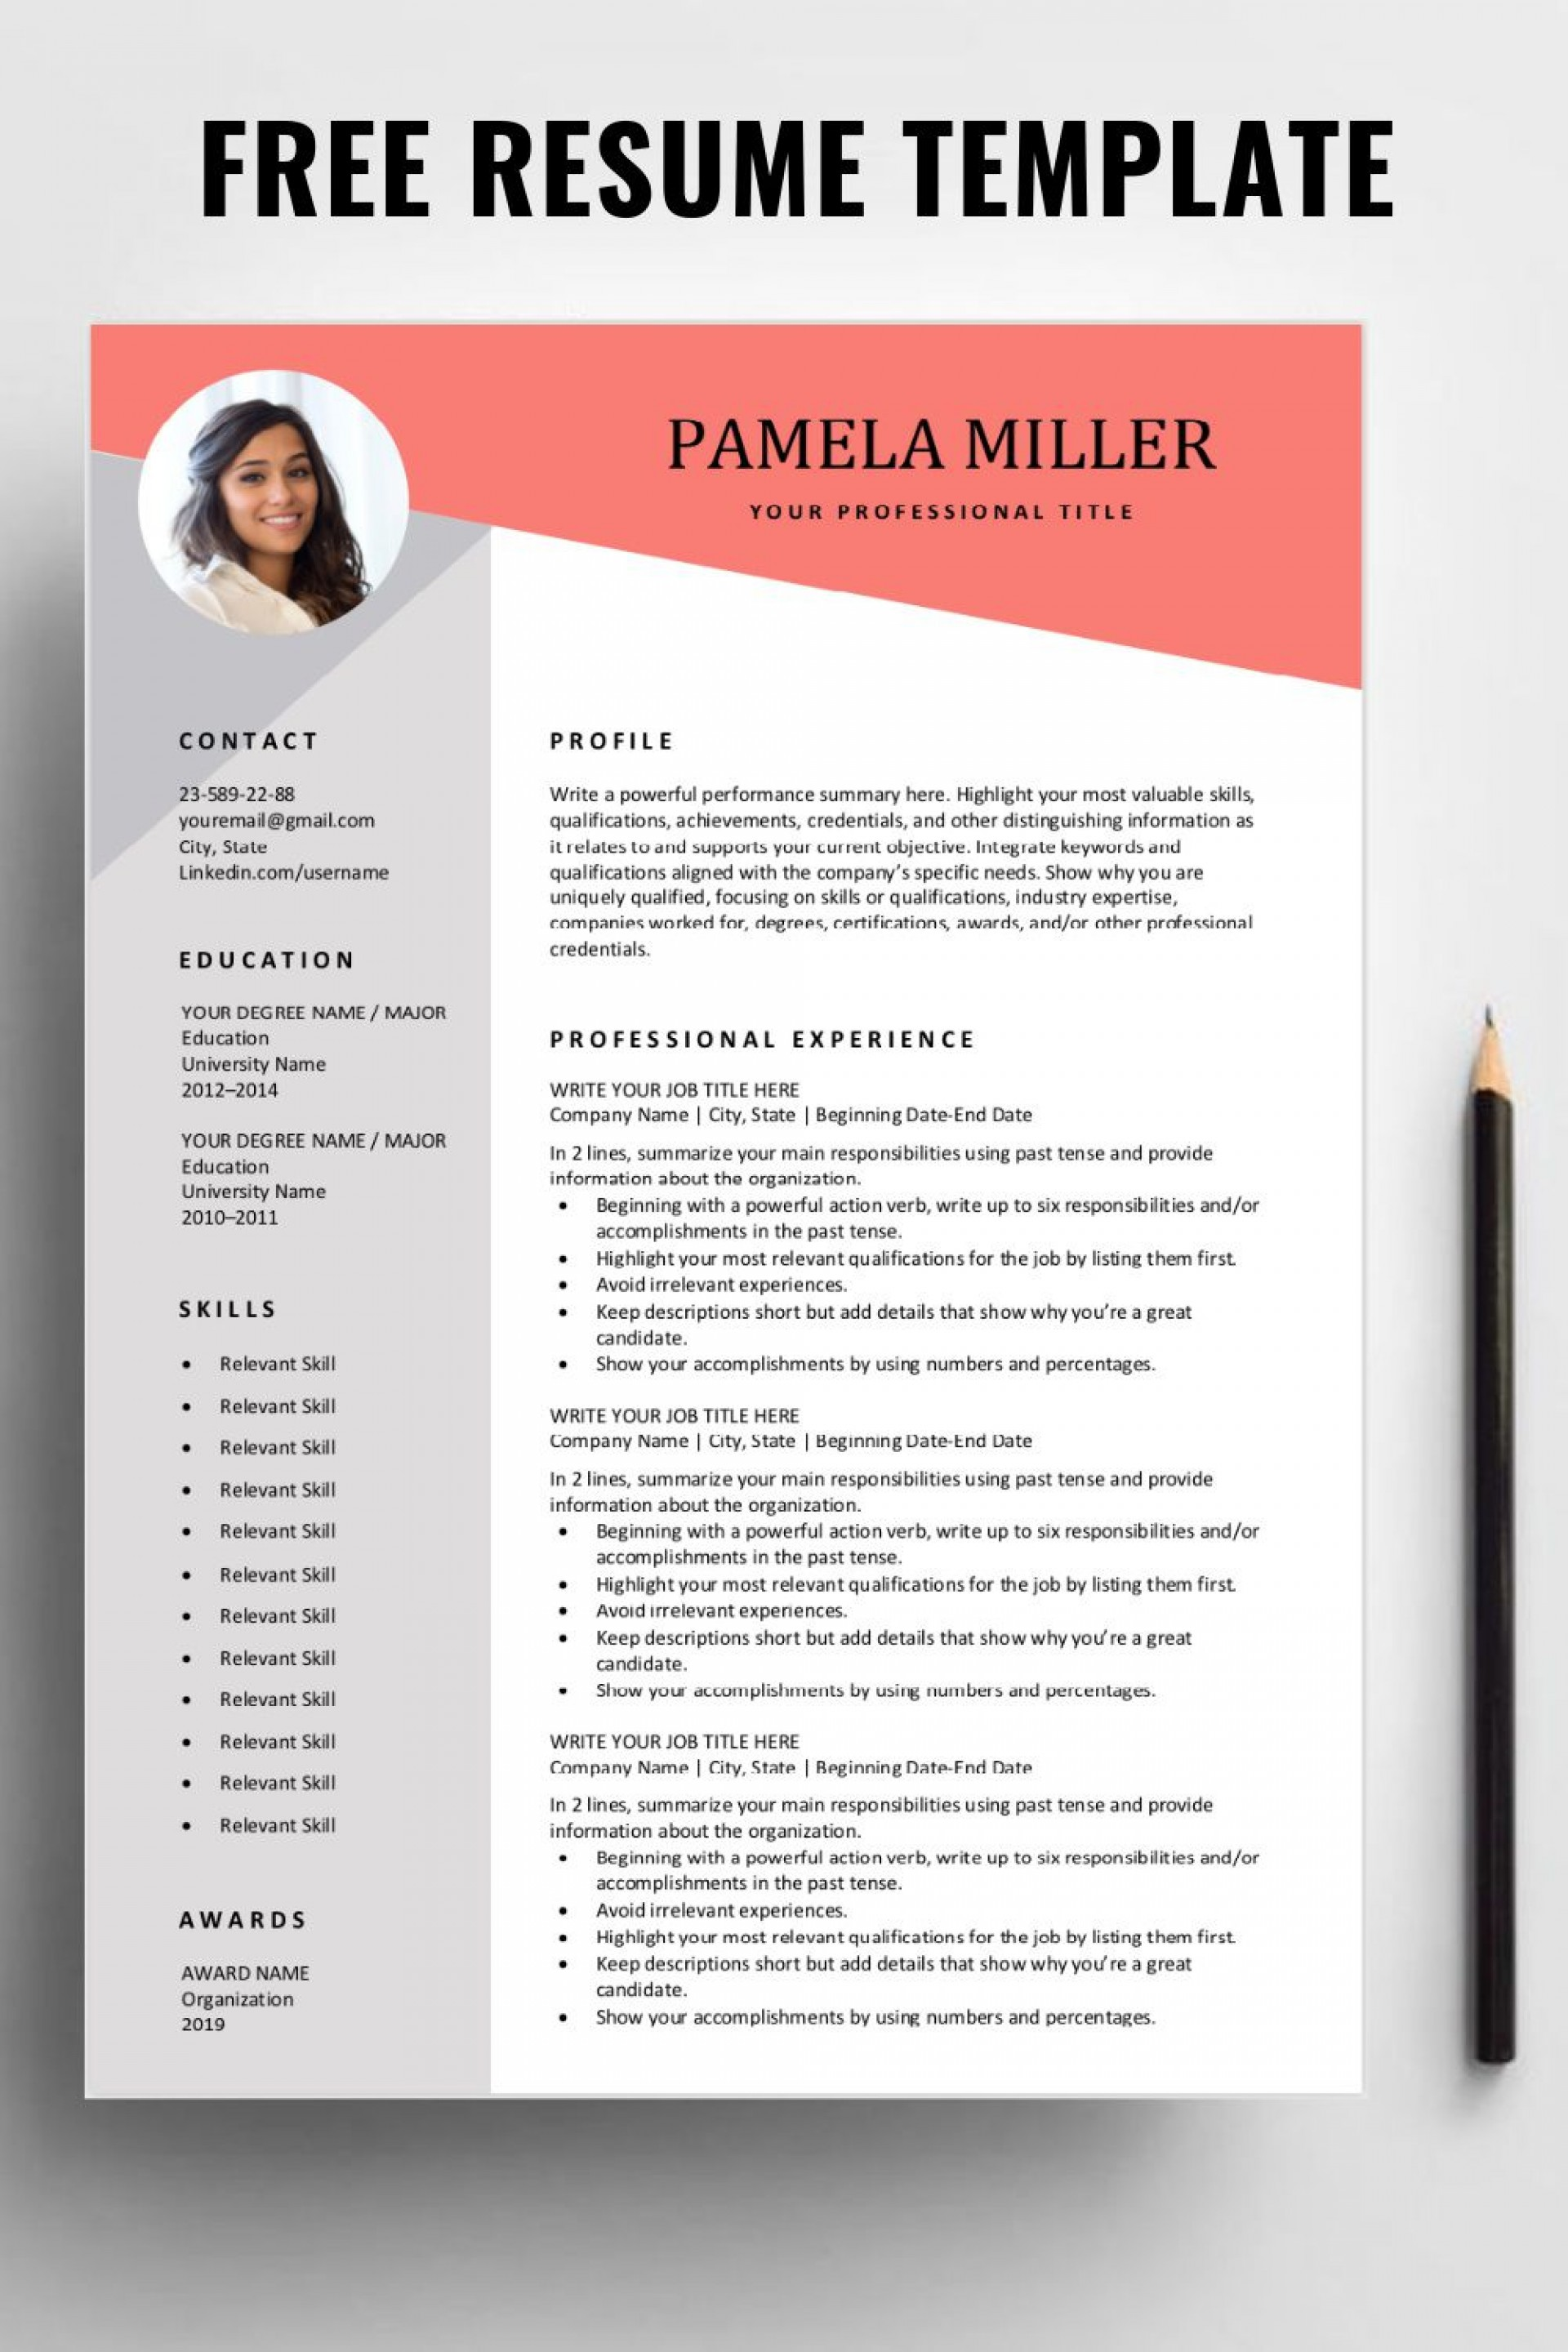 000 Formidable Free Resume Template Download High Def  Google Doc Attractive Microsoft Word 20201920